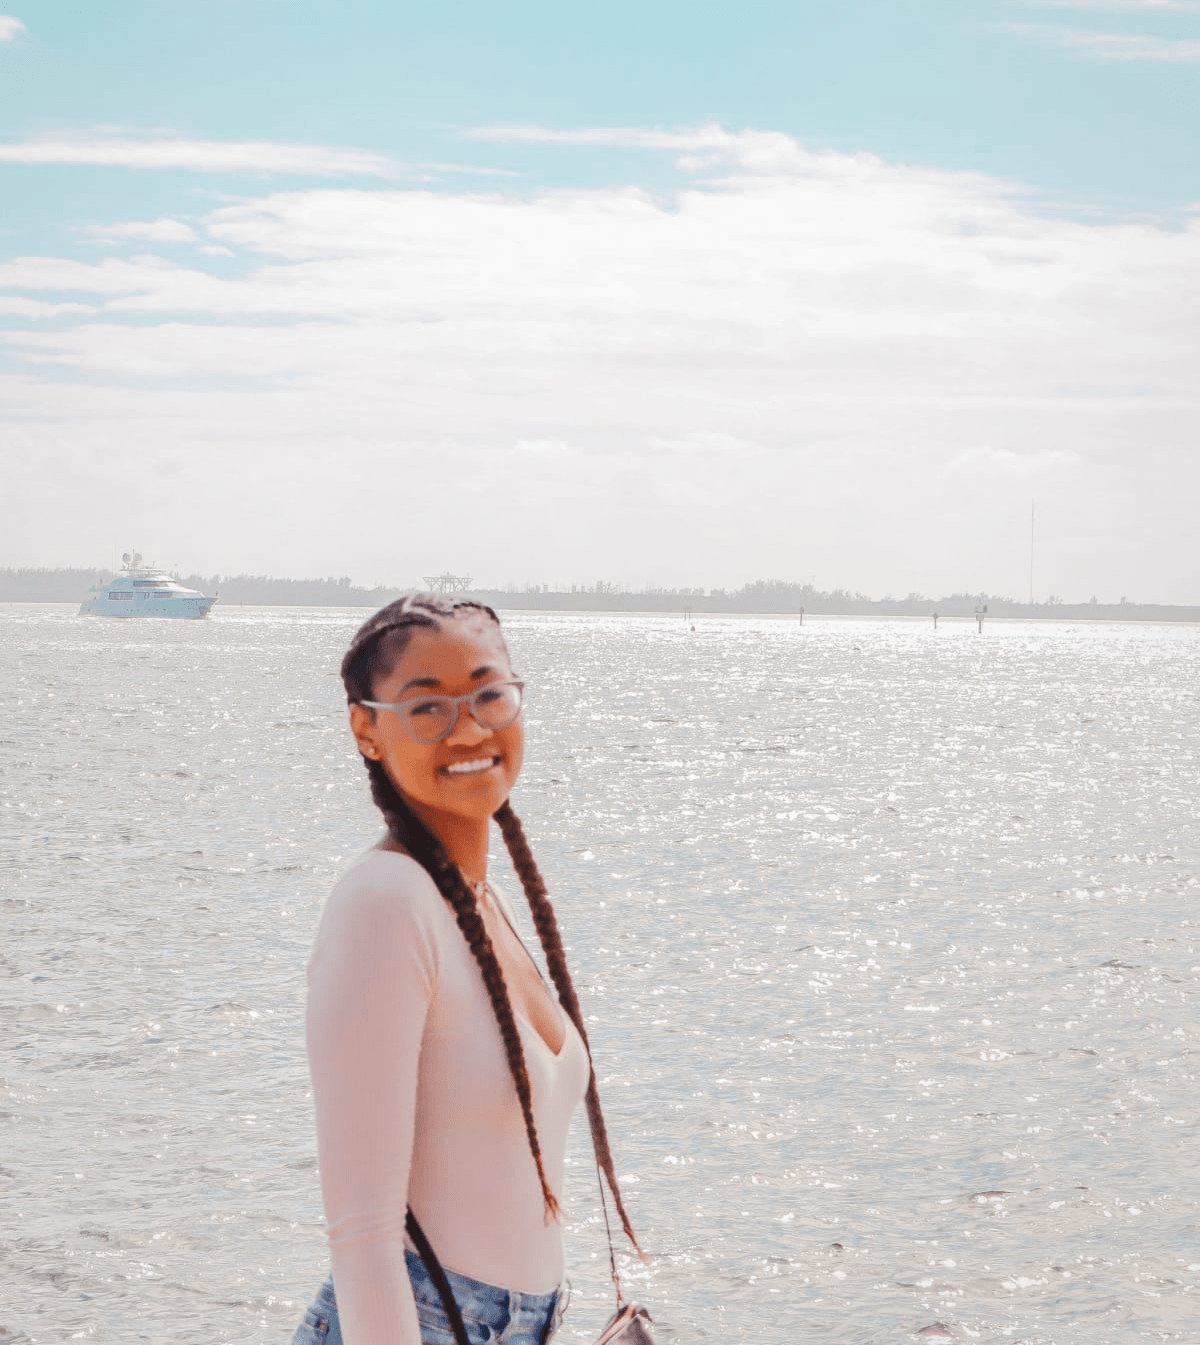 Black girl with  french braids smiling by the ocean with boat in the background